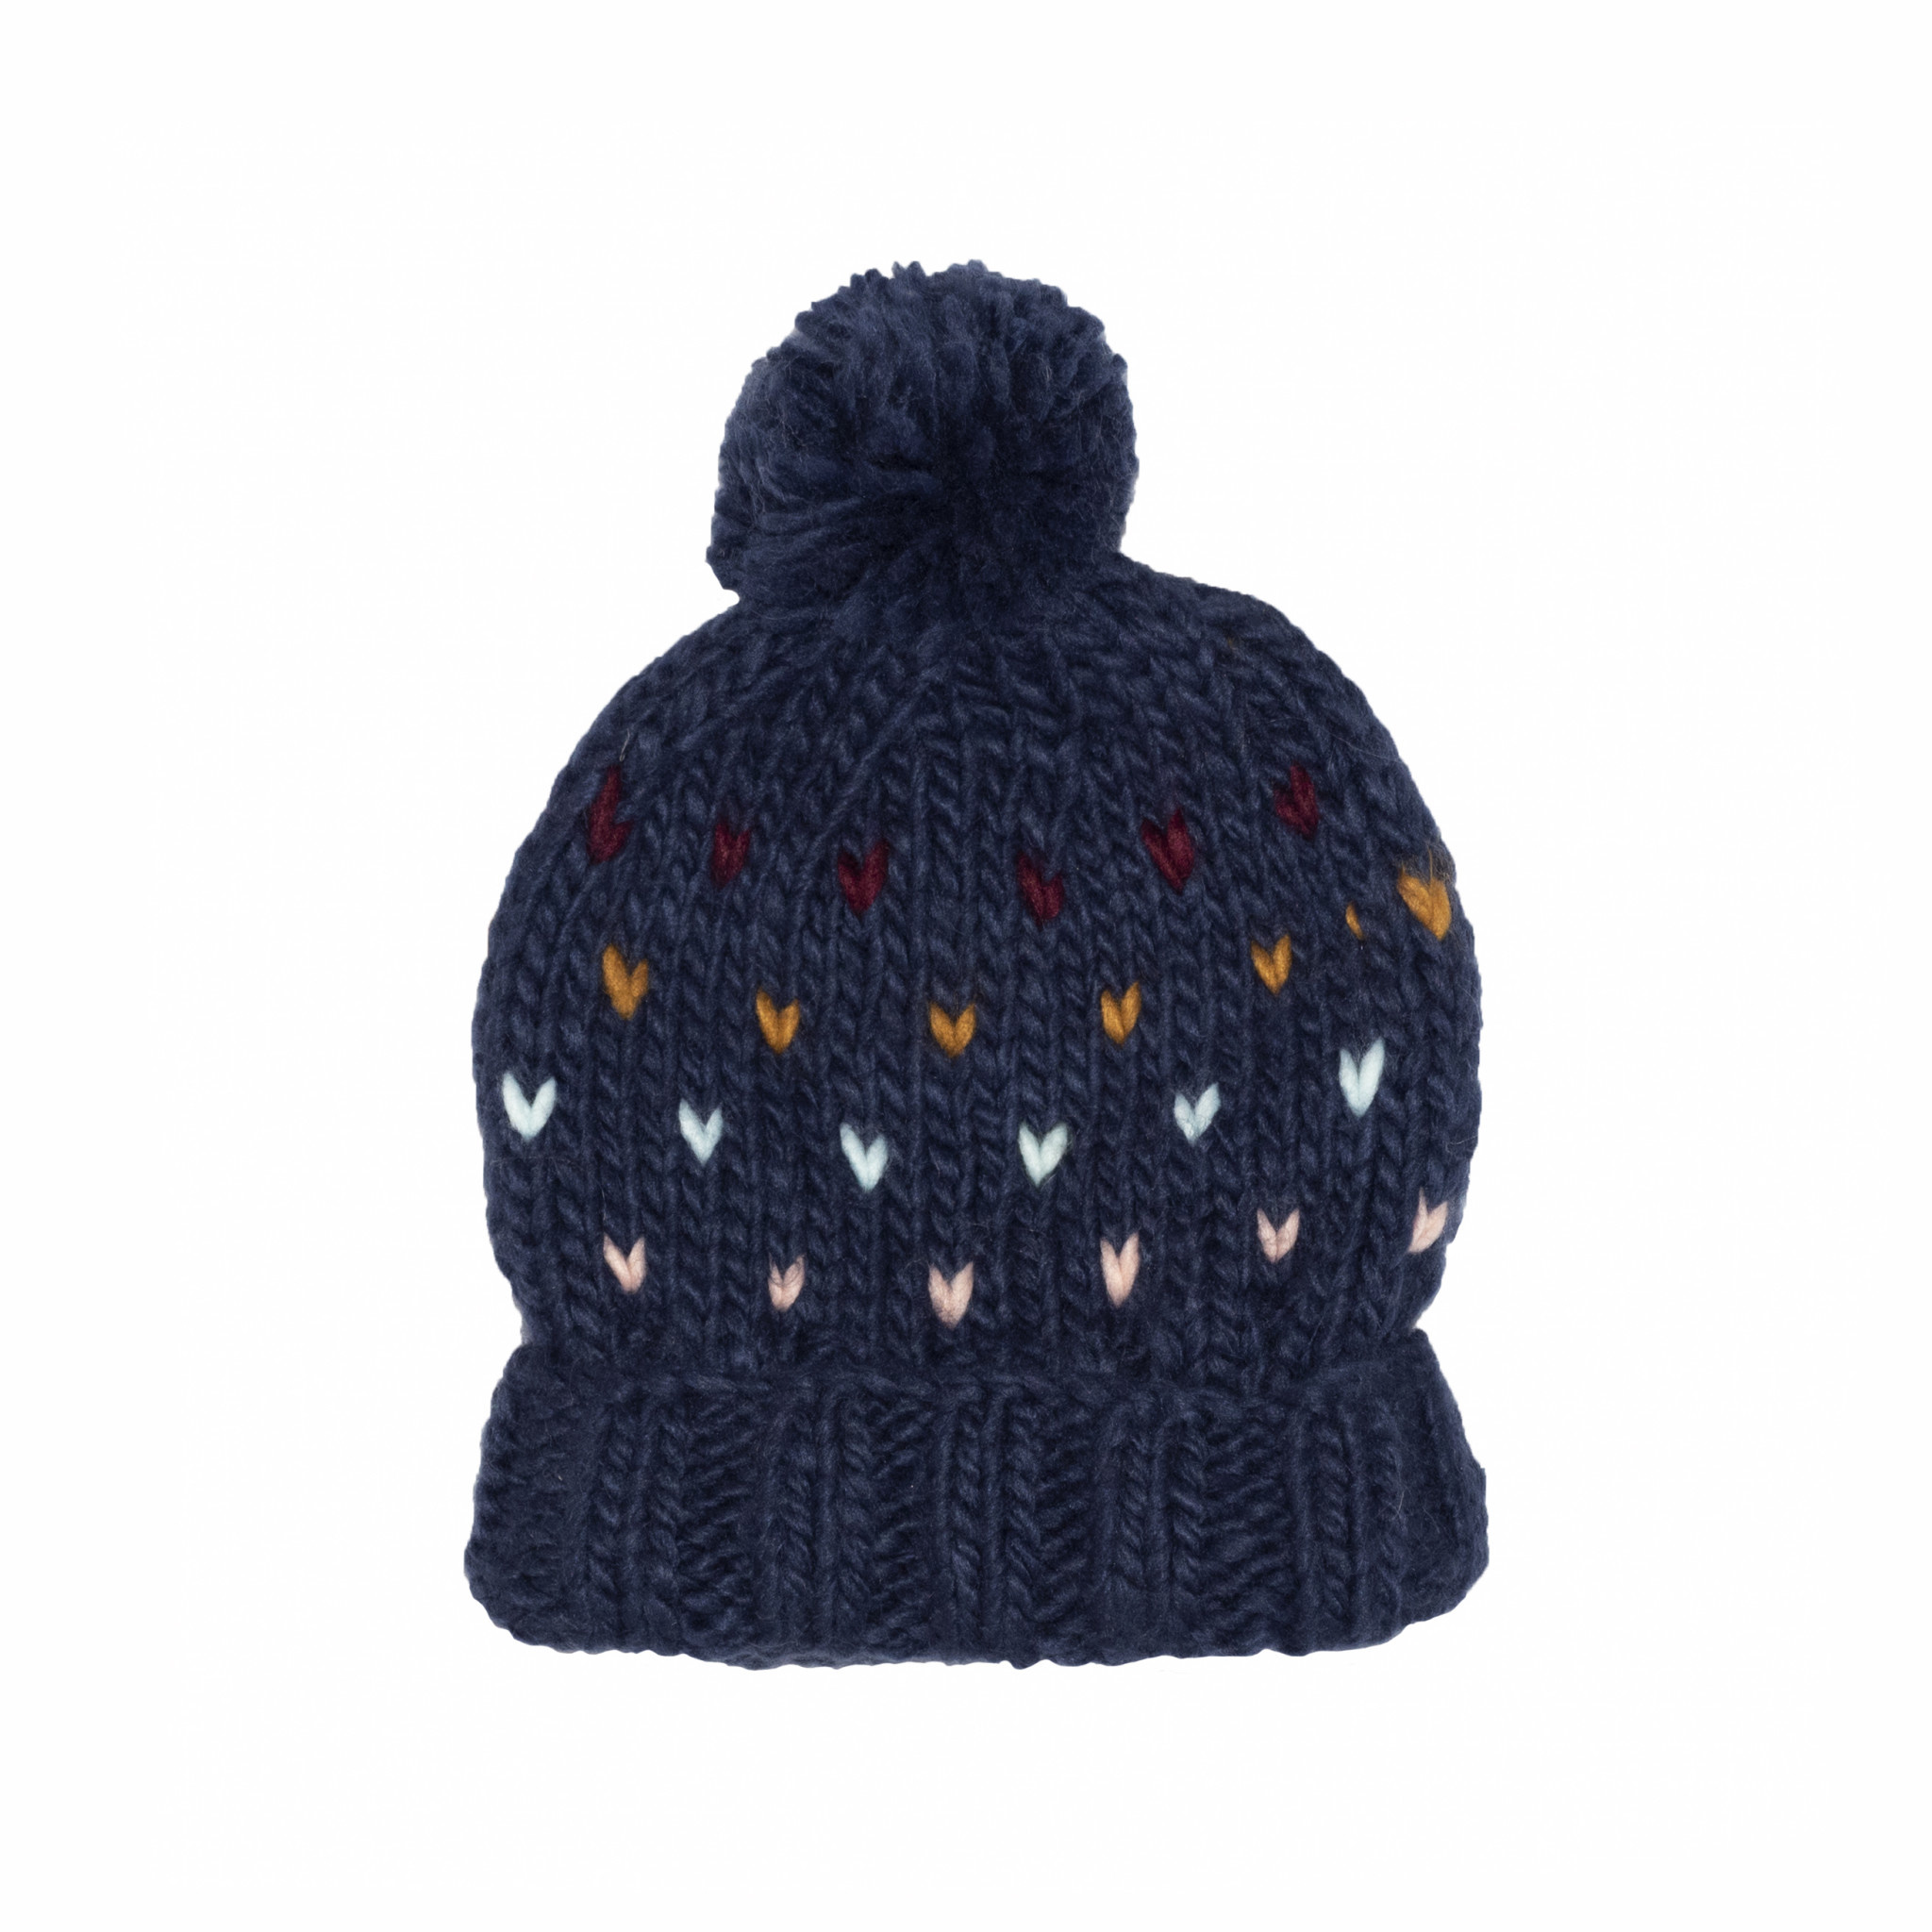 The Blueberry Hill Sawyer Knit Hat